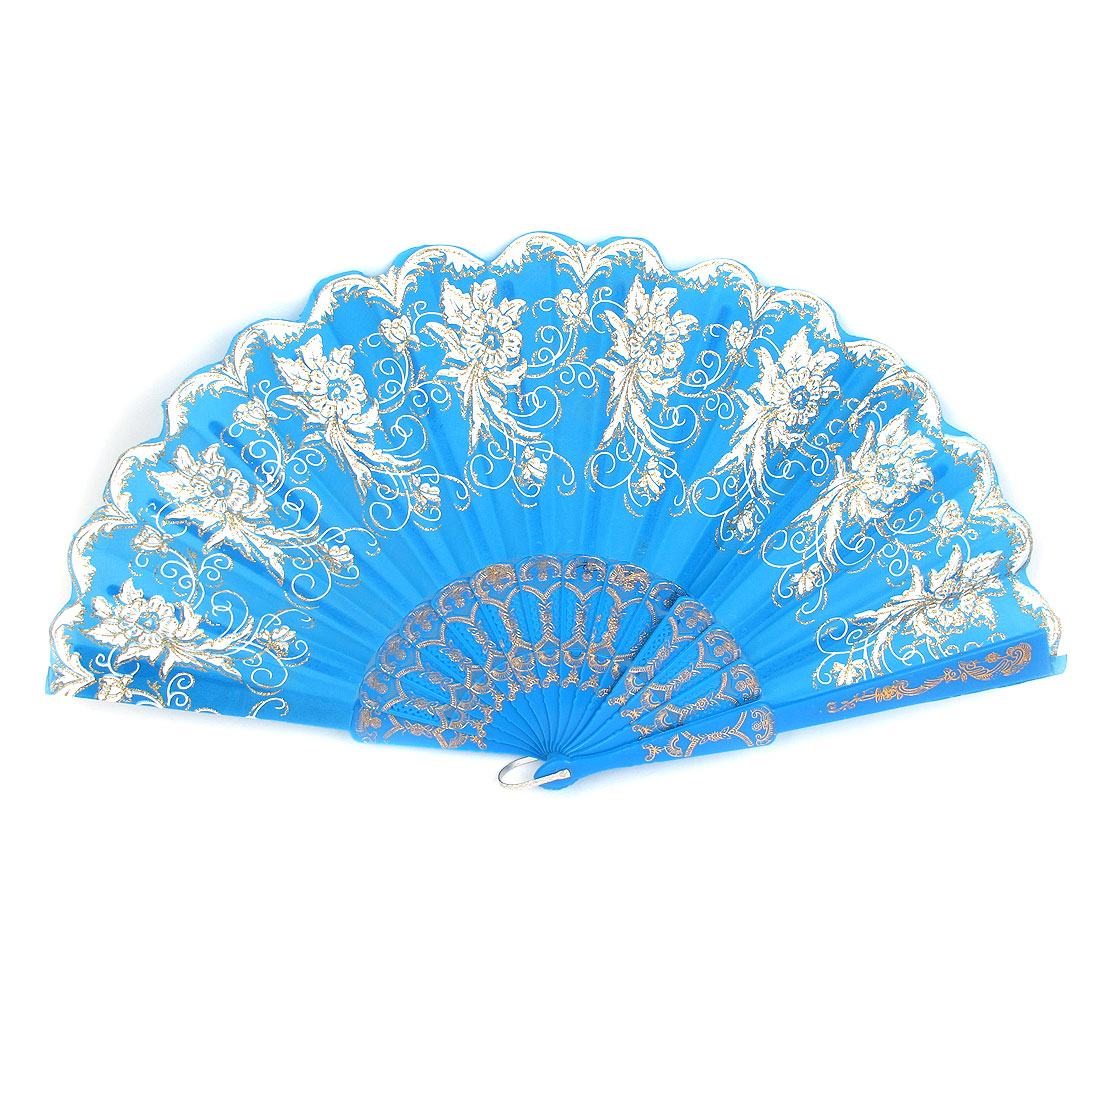 Blue Carved Plastic Rib Hollow Out Frame Foldable Dancing Hand Fan for Lady